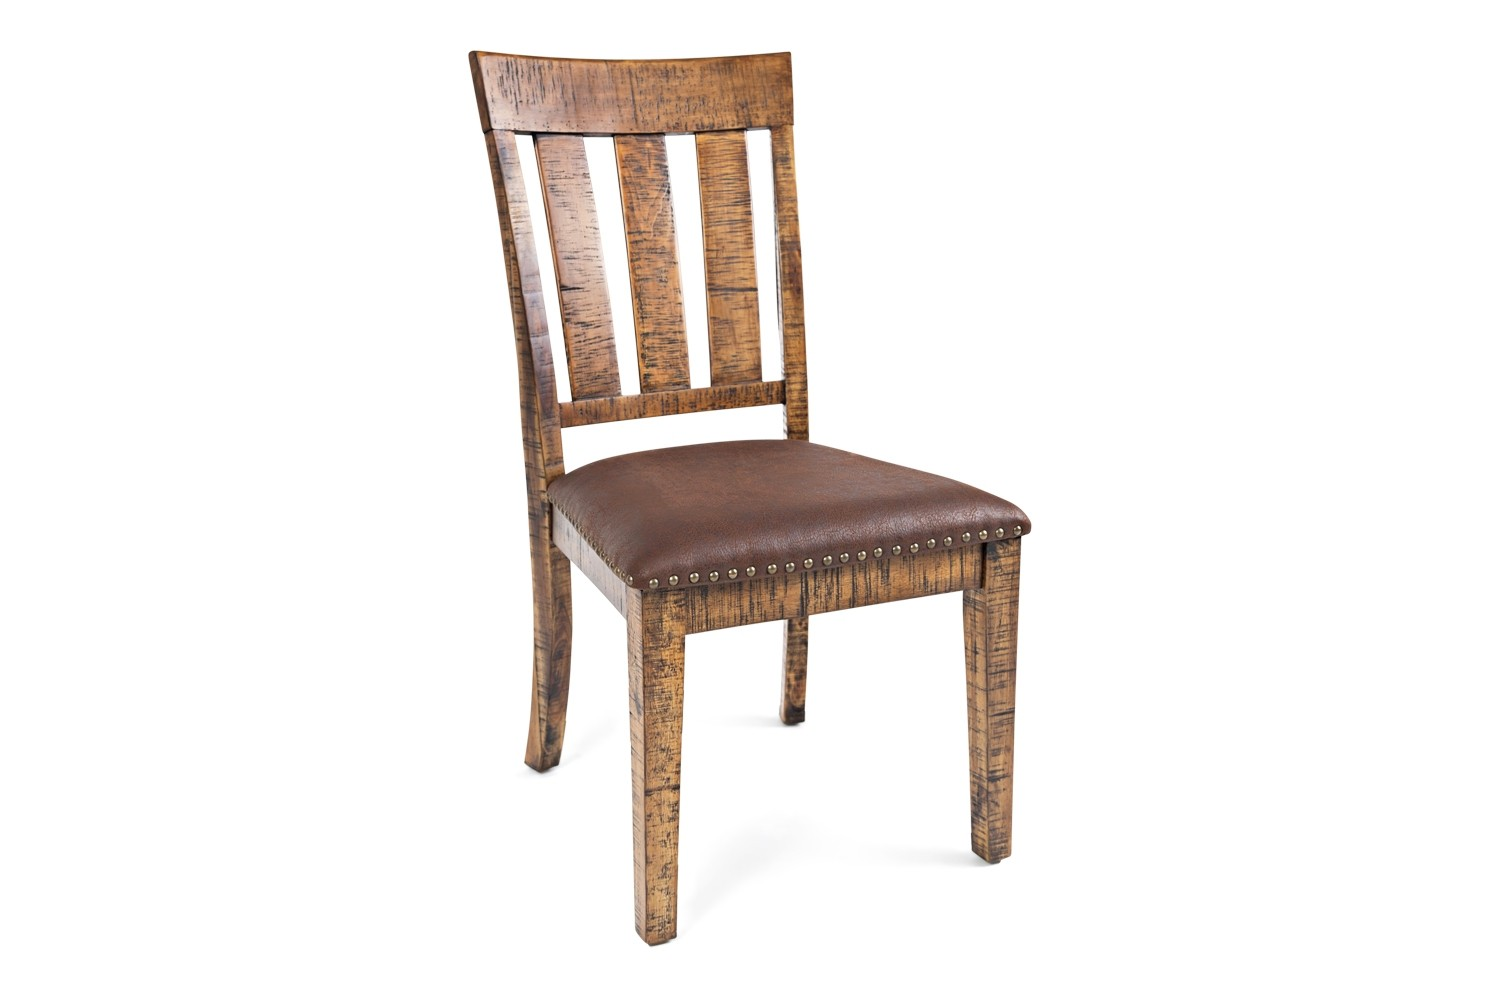 dining room chairs for less | Cannon Valley Rectangular Table Dining Room | Mor ...